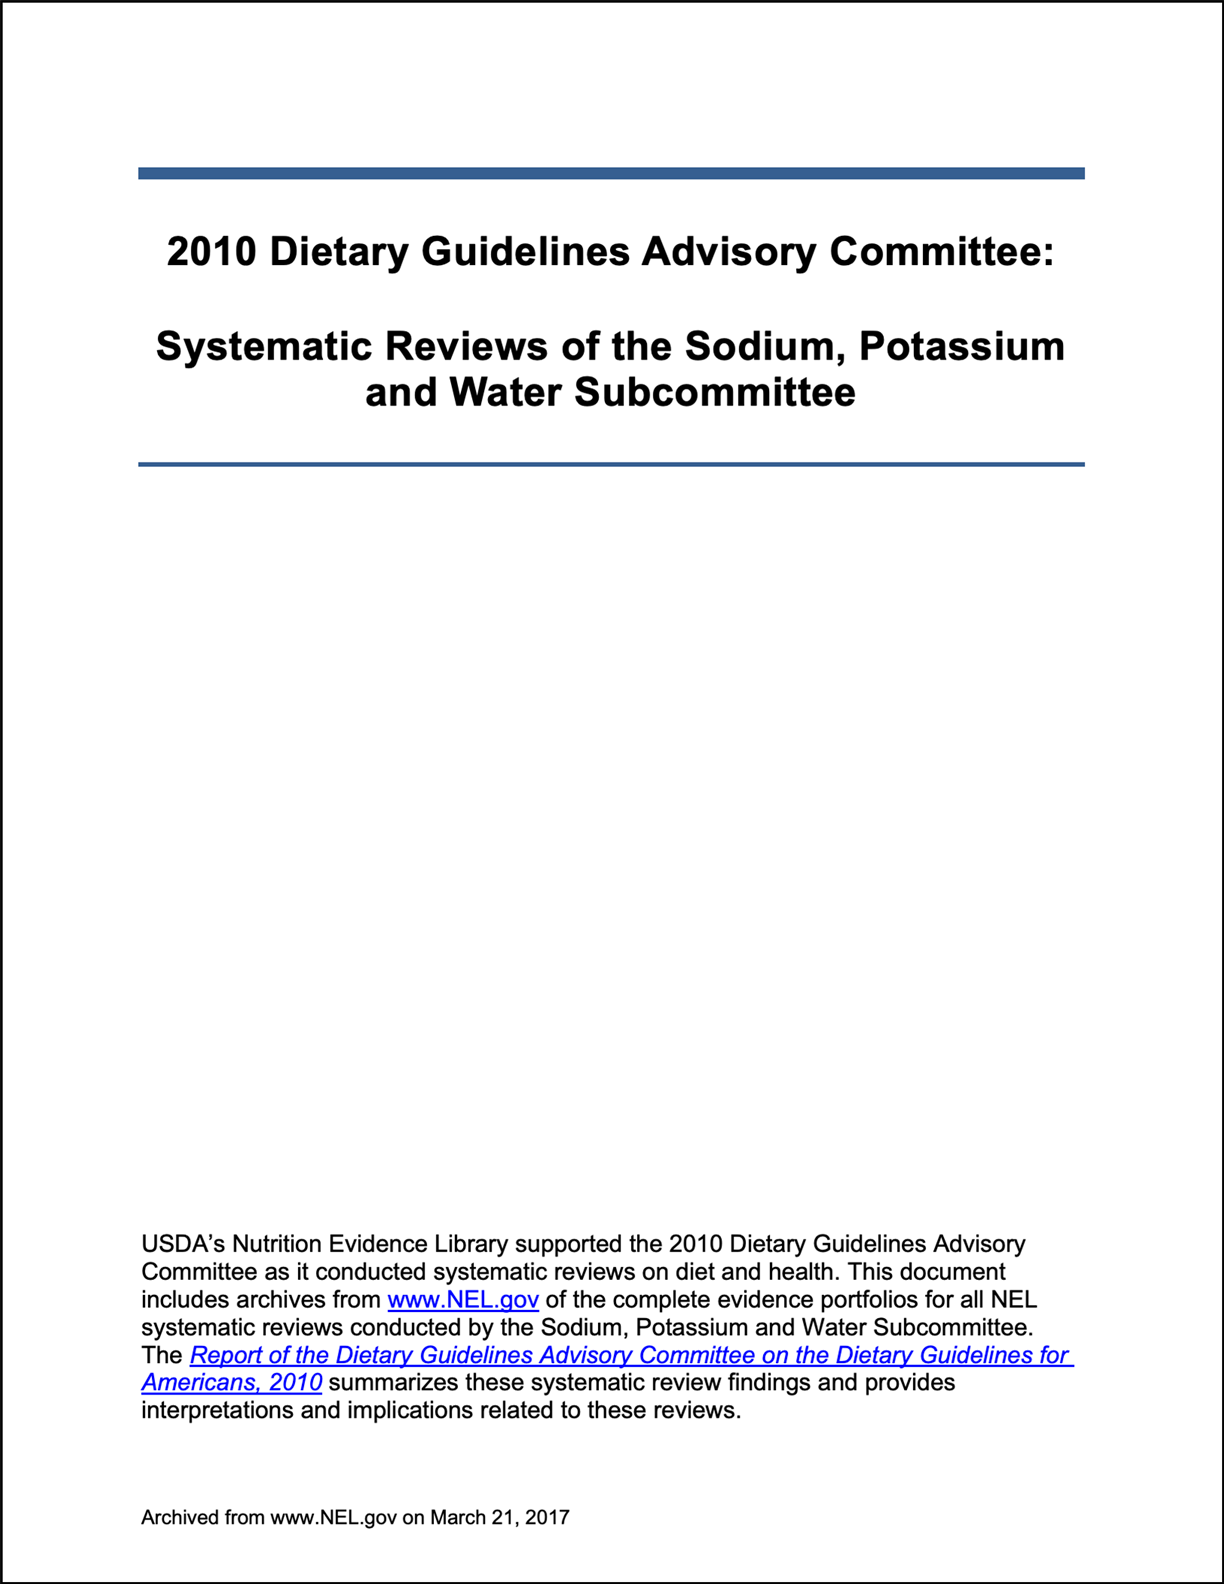 2010 Systematic Reviews of the Sodium, Potassium and Water Subcommittee.png